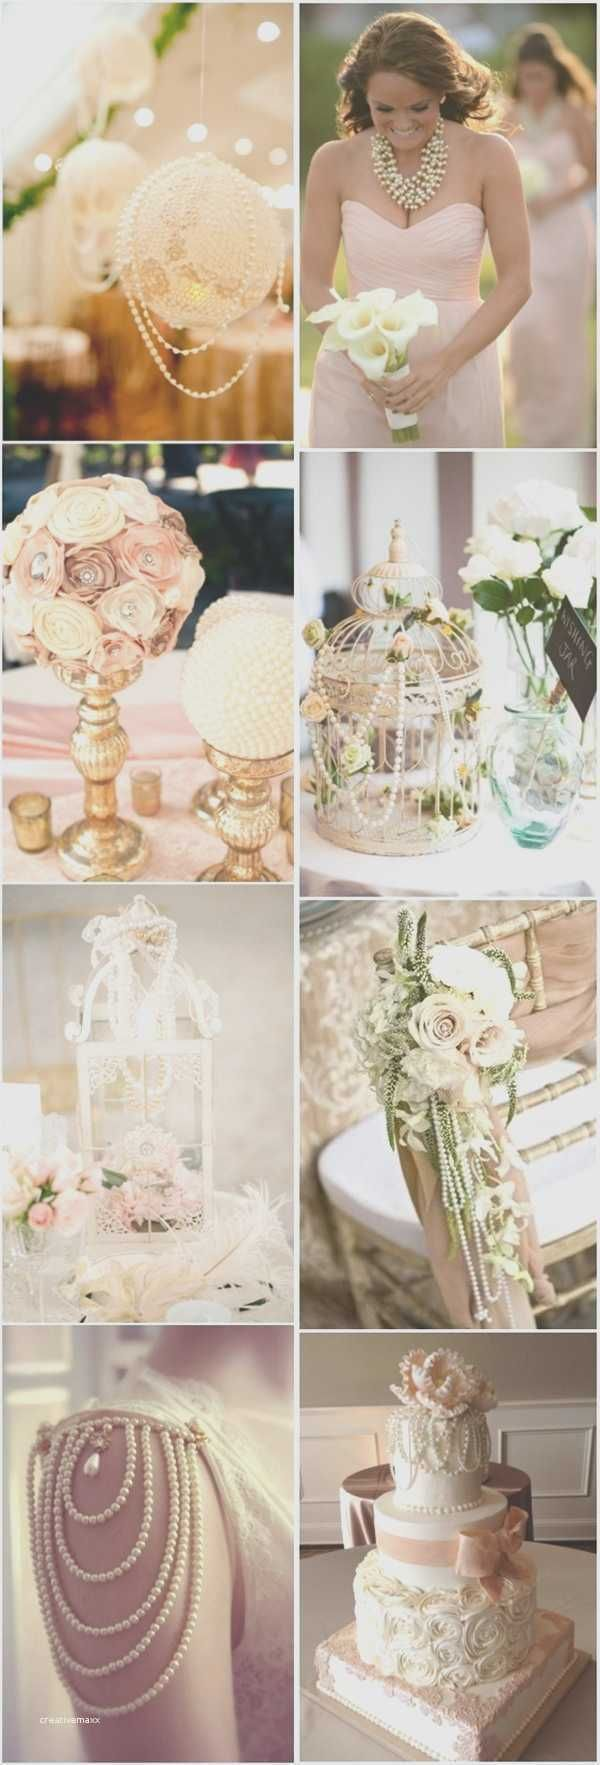 Awesome Vintage Wedding Ideas On A Budget | Vintage weddings ...